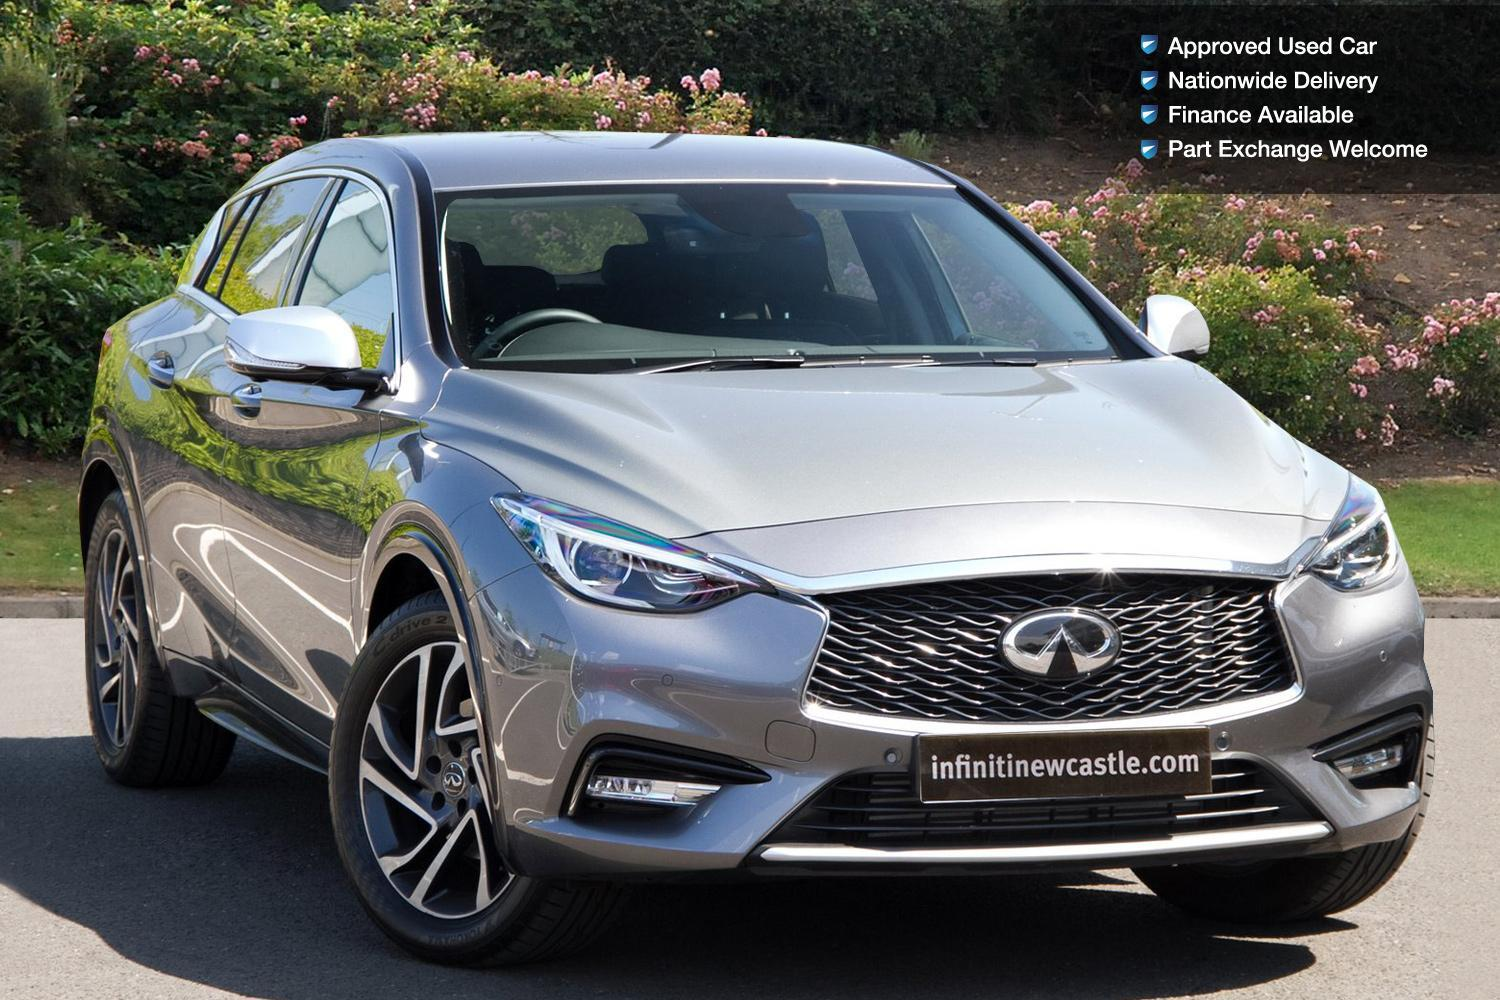 used infiniti q30 1 6t premium 5dr in touch nav petrol hatchback for sale newcastle infiniti. Black Bedroom Furniture Sets. Home Design Ideas